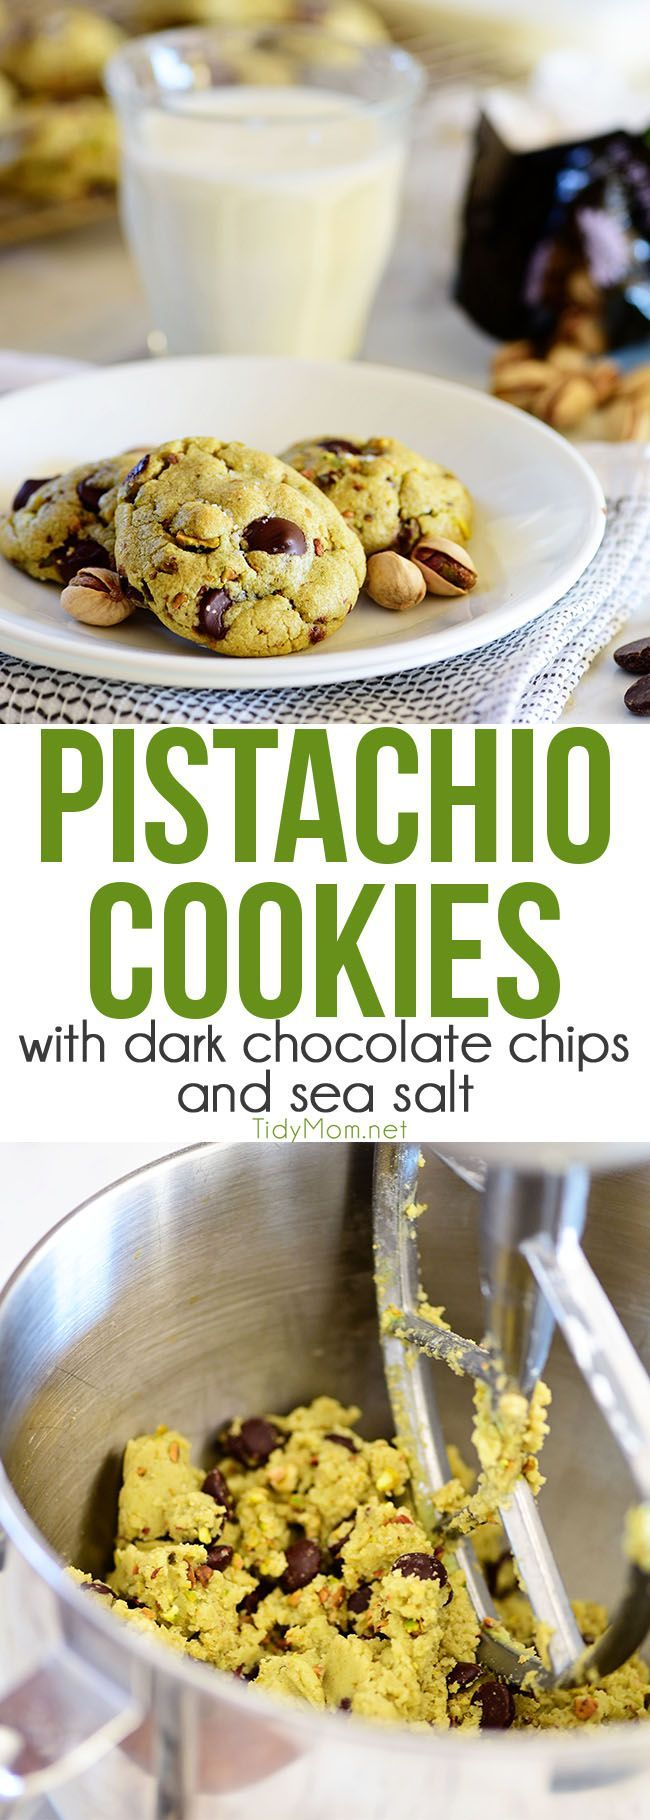 Pistachio cookies are sure to become a favorite! Perfect for St. Patricks Day, Easter, Christmas or any day. These deliciously soft pudding cookies are buttery and salty with dark chocolate chunks that pairs perfectly with chopped pistachios. I bet you can't eat just one! Get the full printable recipe at TidyMom.net